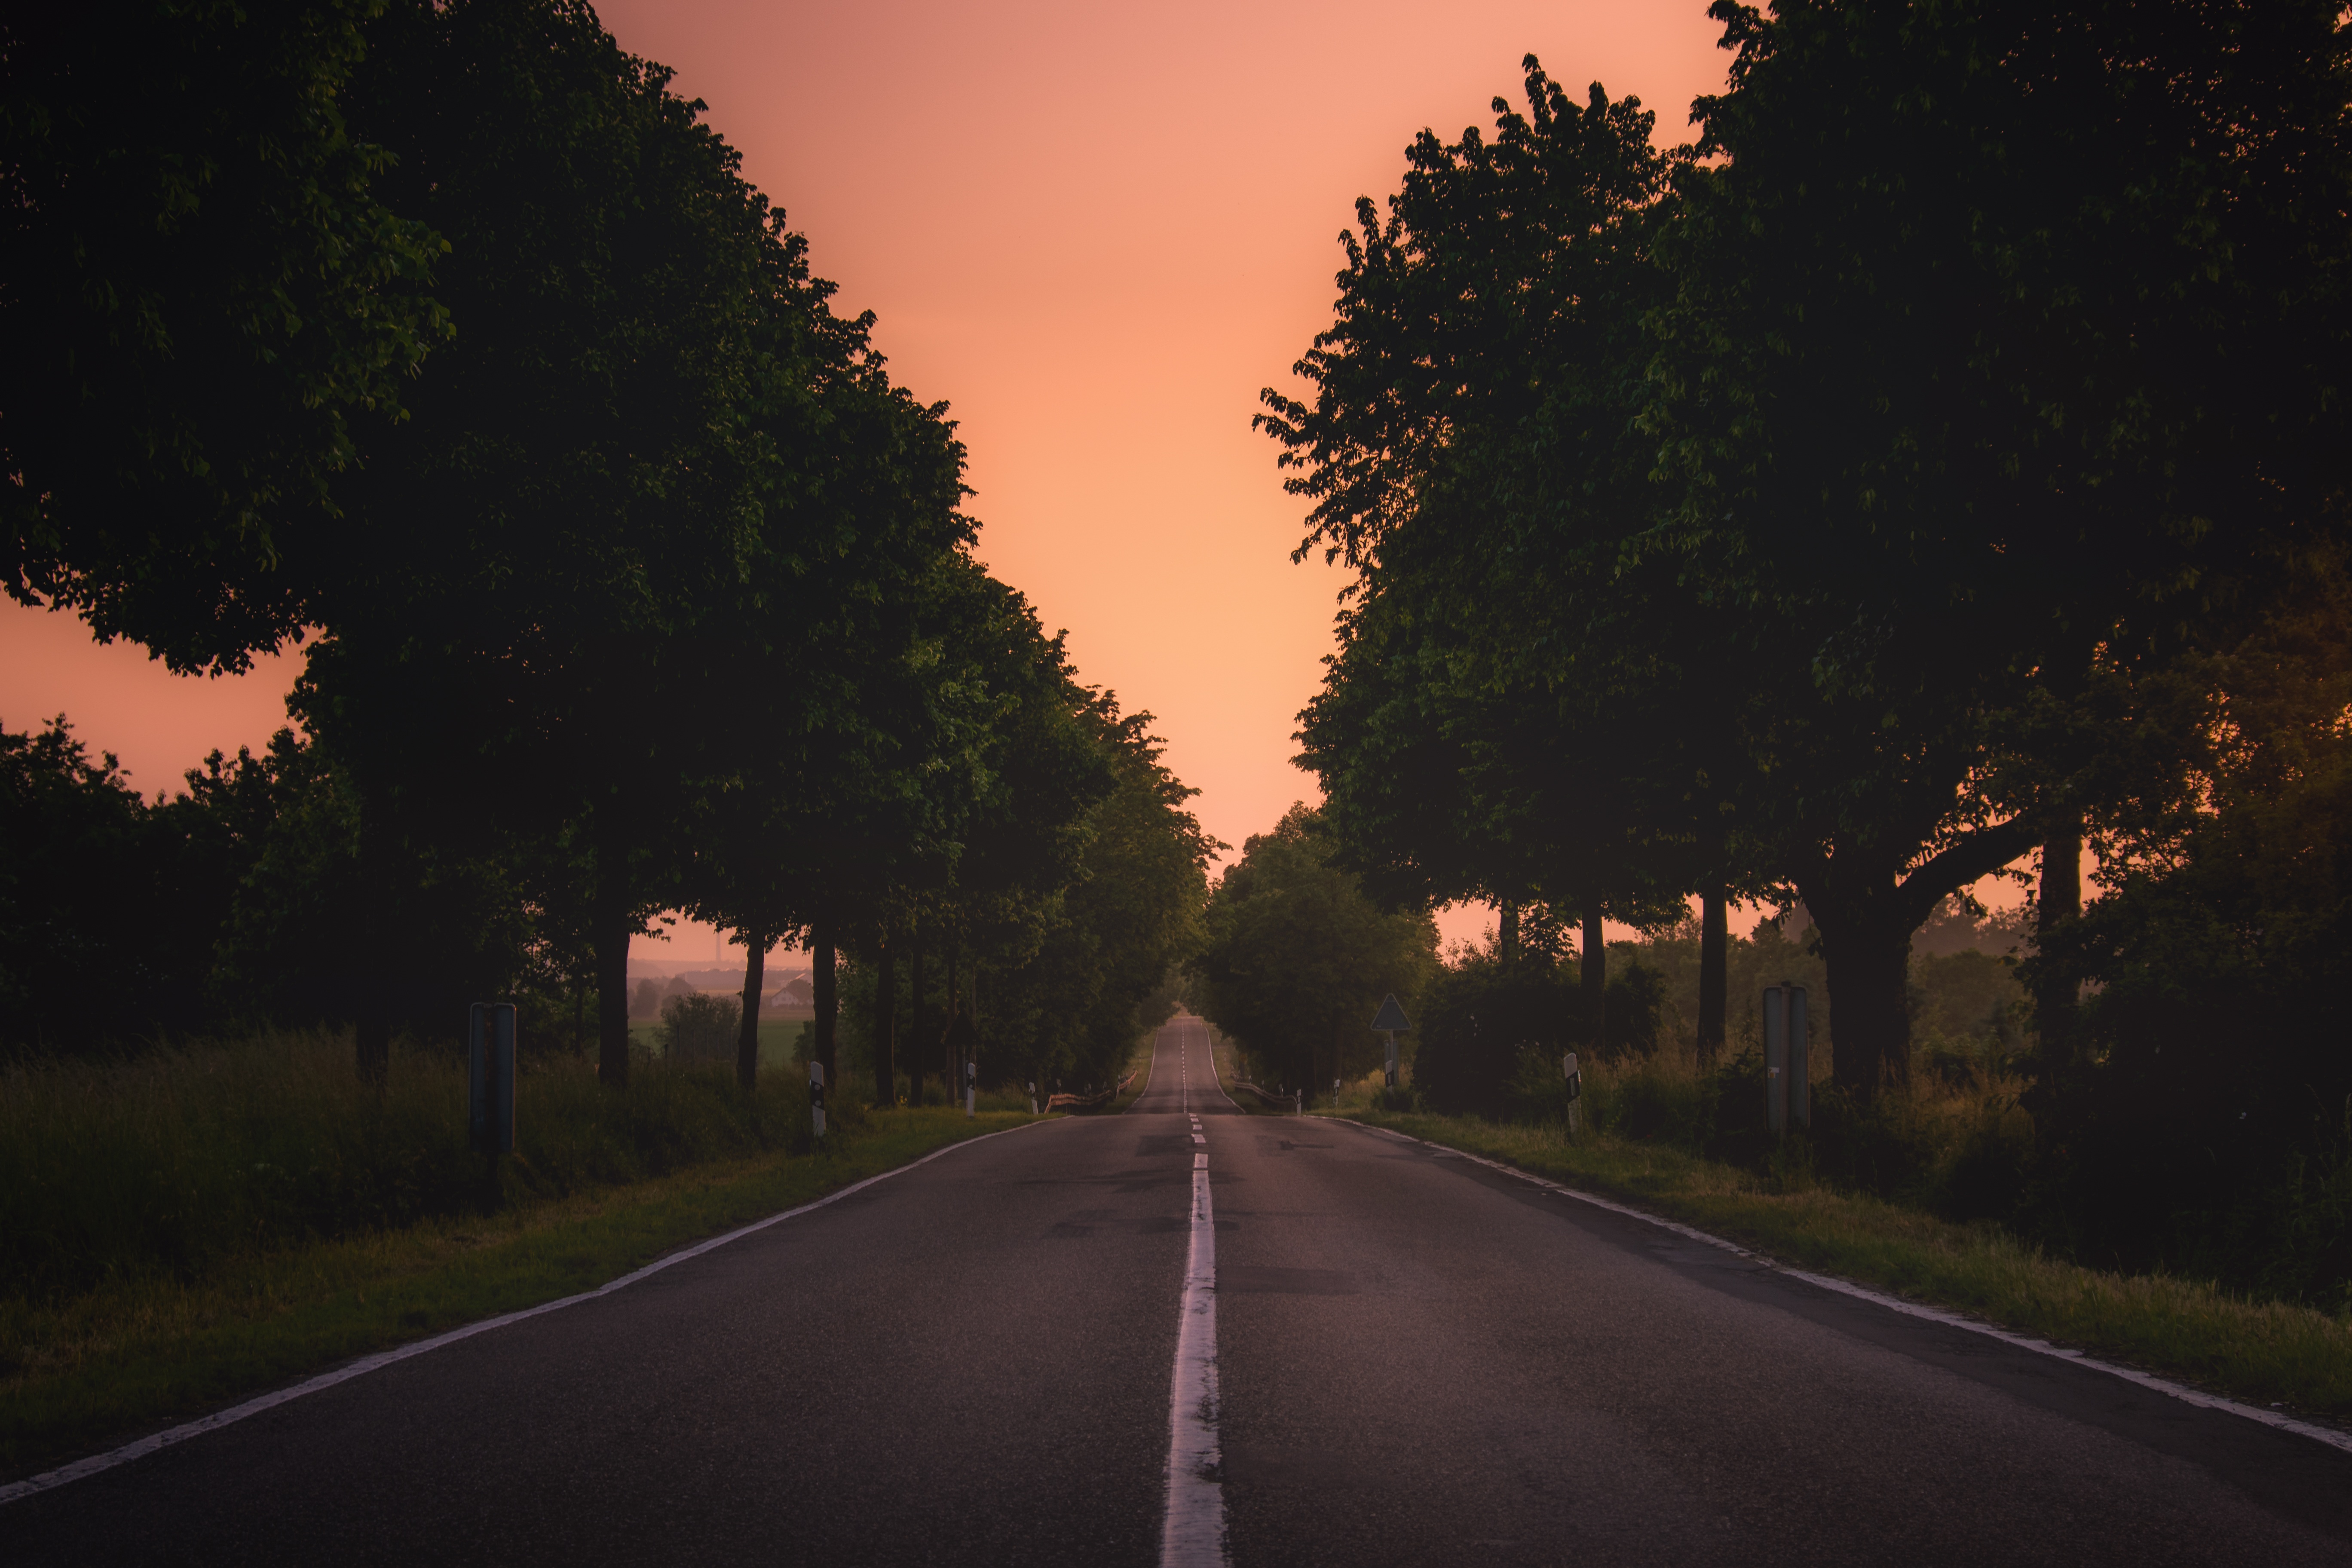 Scenic Road In Monsheim Germany Image Free Stock Photo